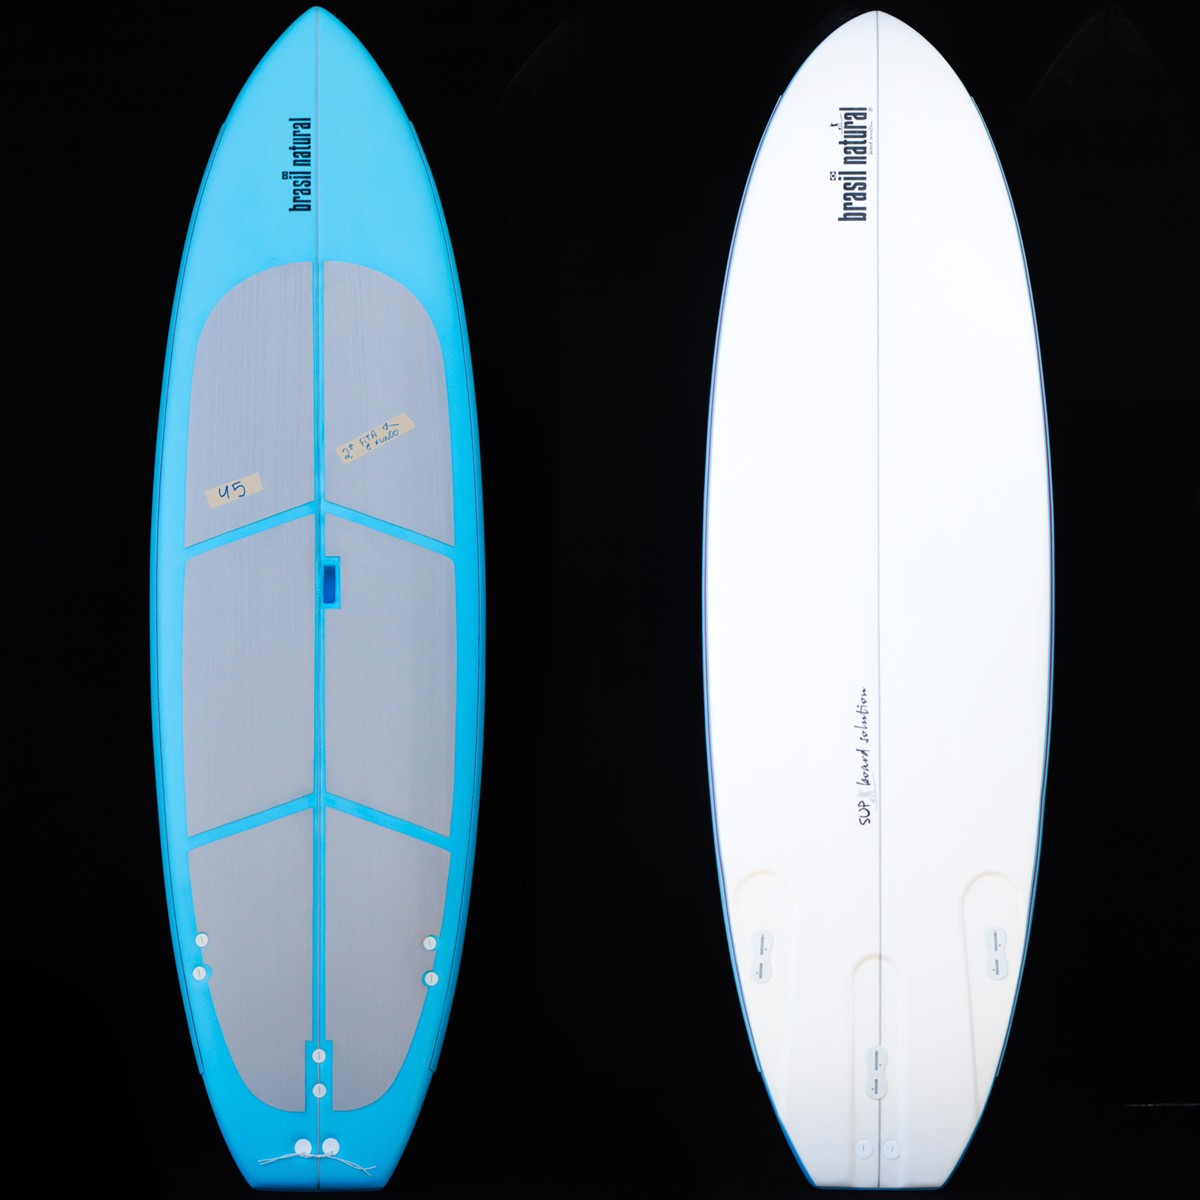 Prancha de stand up paddle 10 pés soft + kit remada - Outlet 45